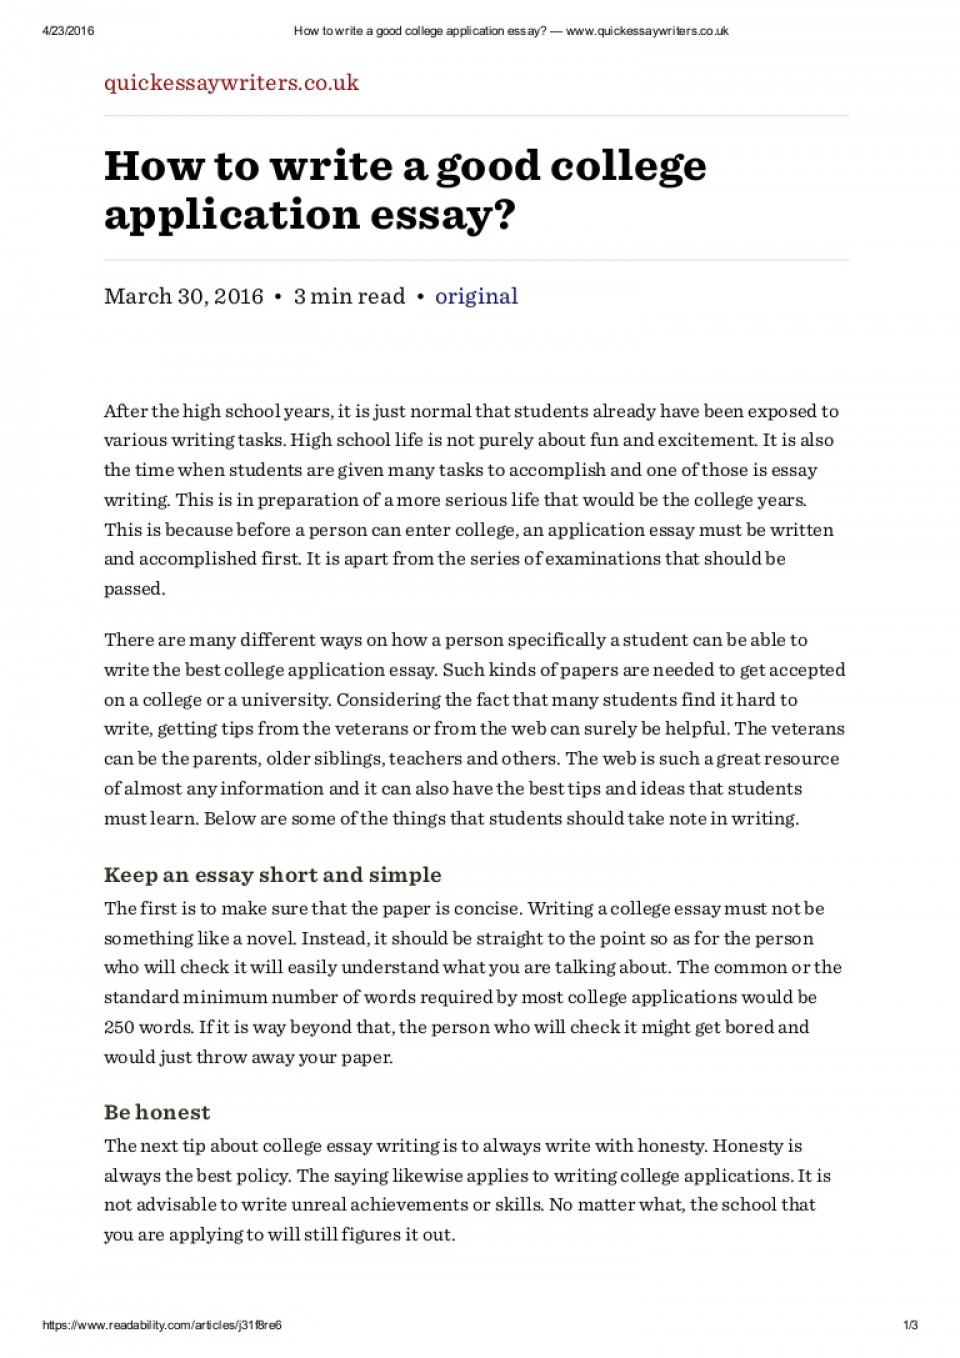 009 Essay Example College Application Howtowriteagoodcollegeapplicationessaywww Thumbnail Unbelievable Template Admission Topics To Avoid Help 960